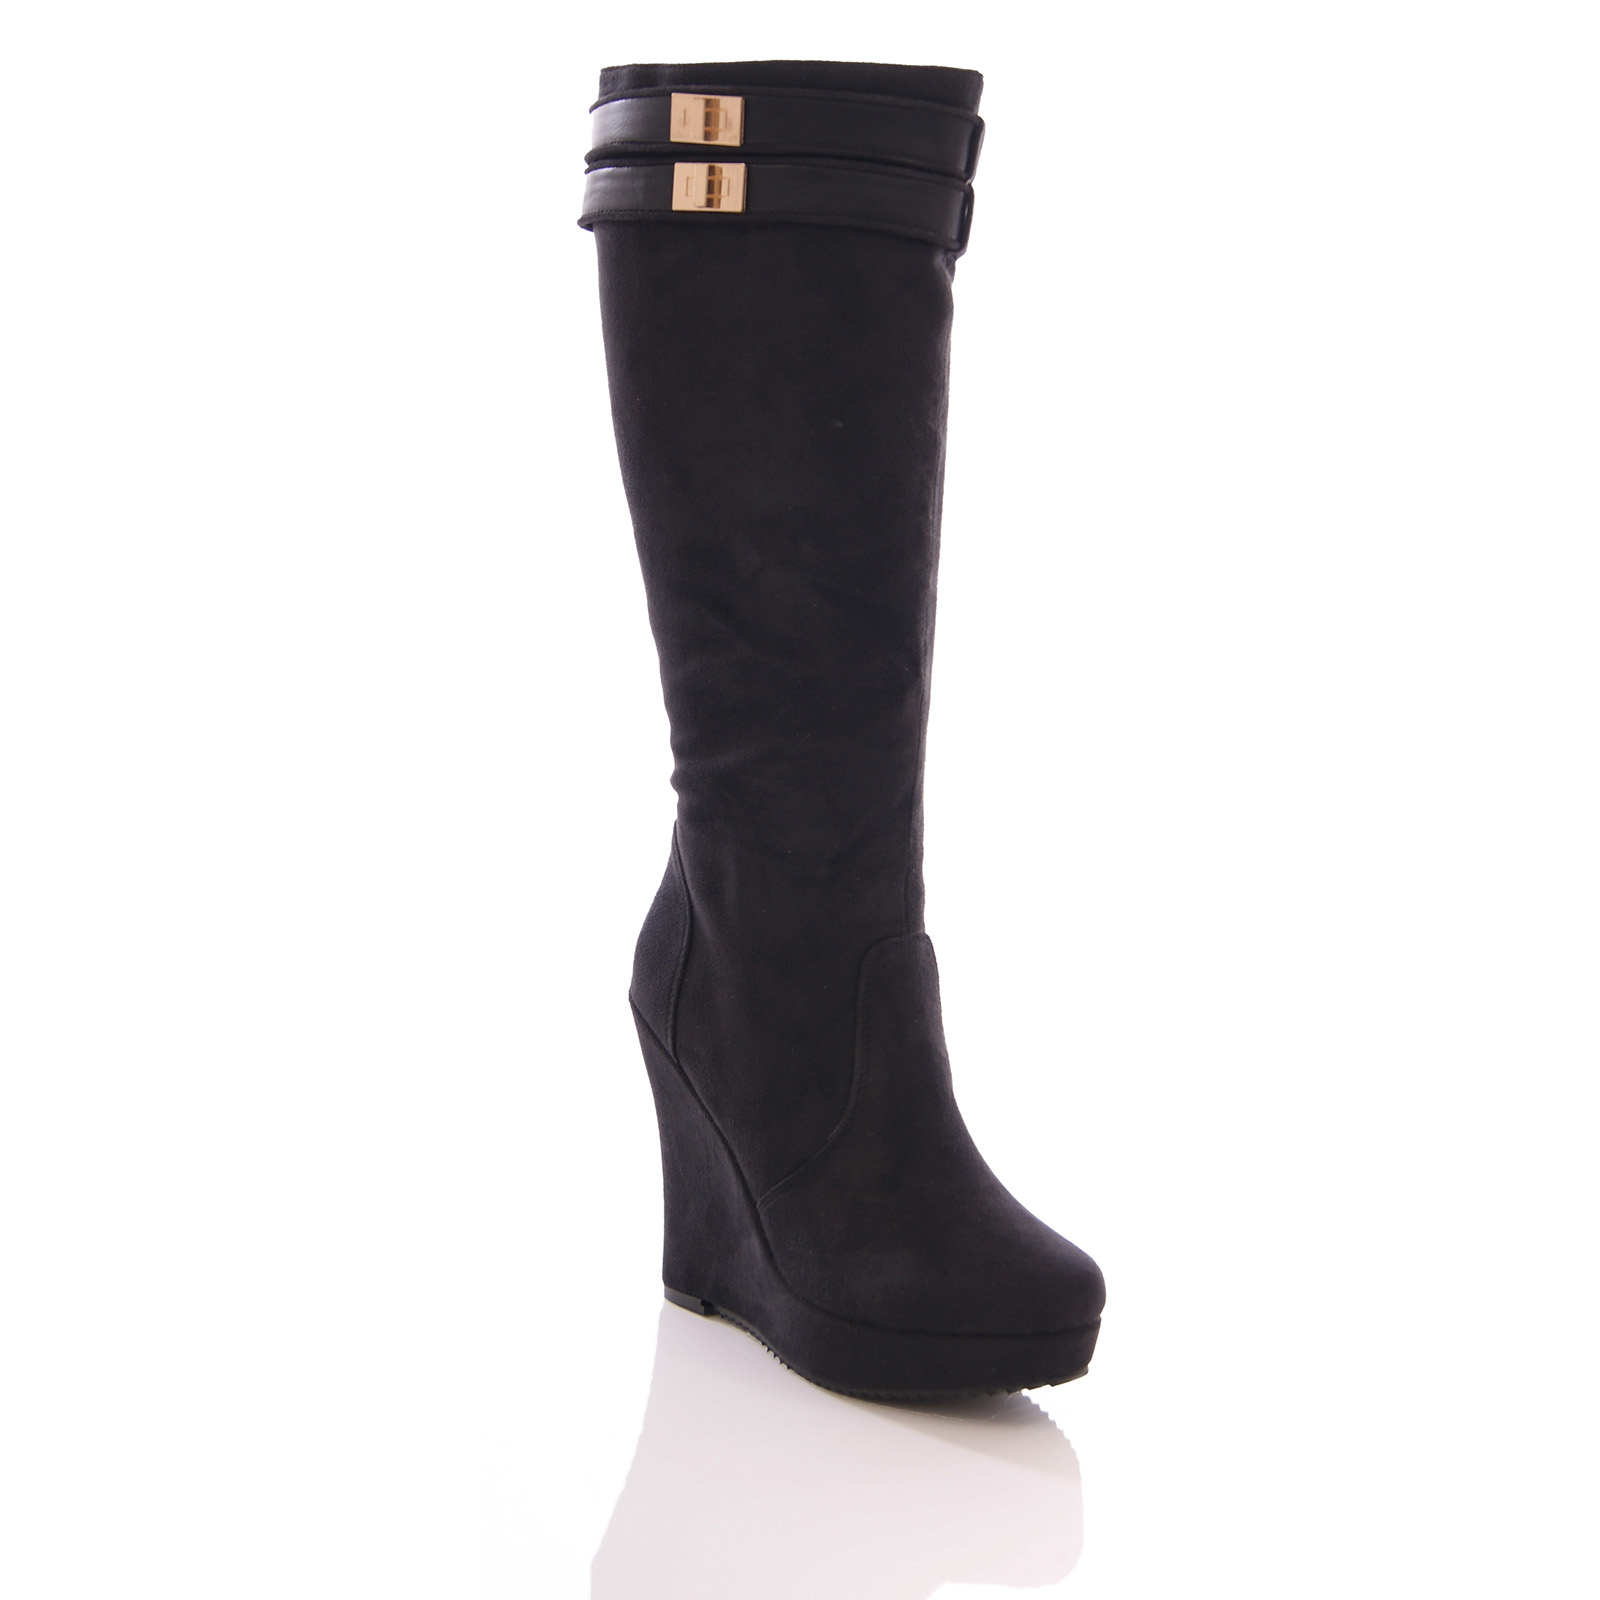 knee high boots womens wedge platform faux suede black